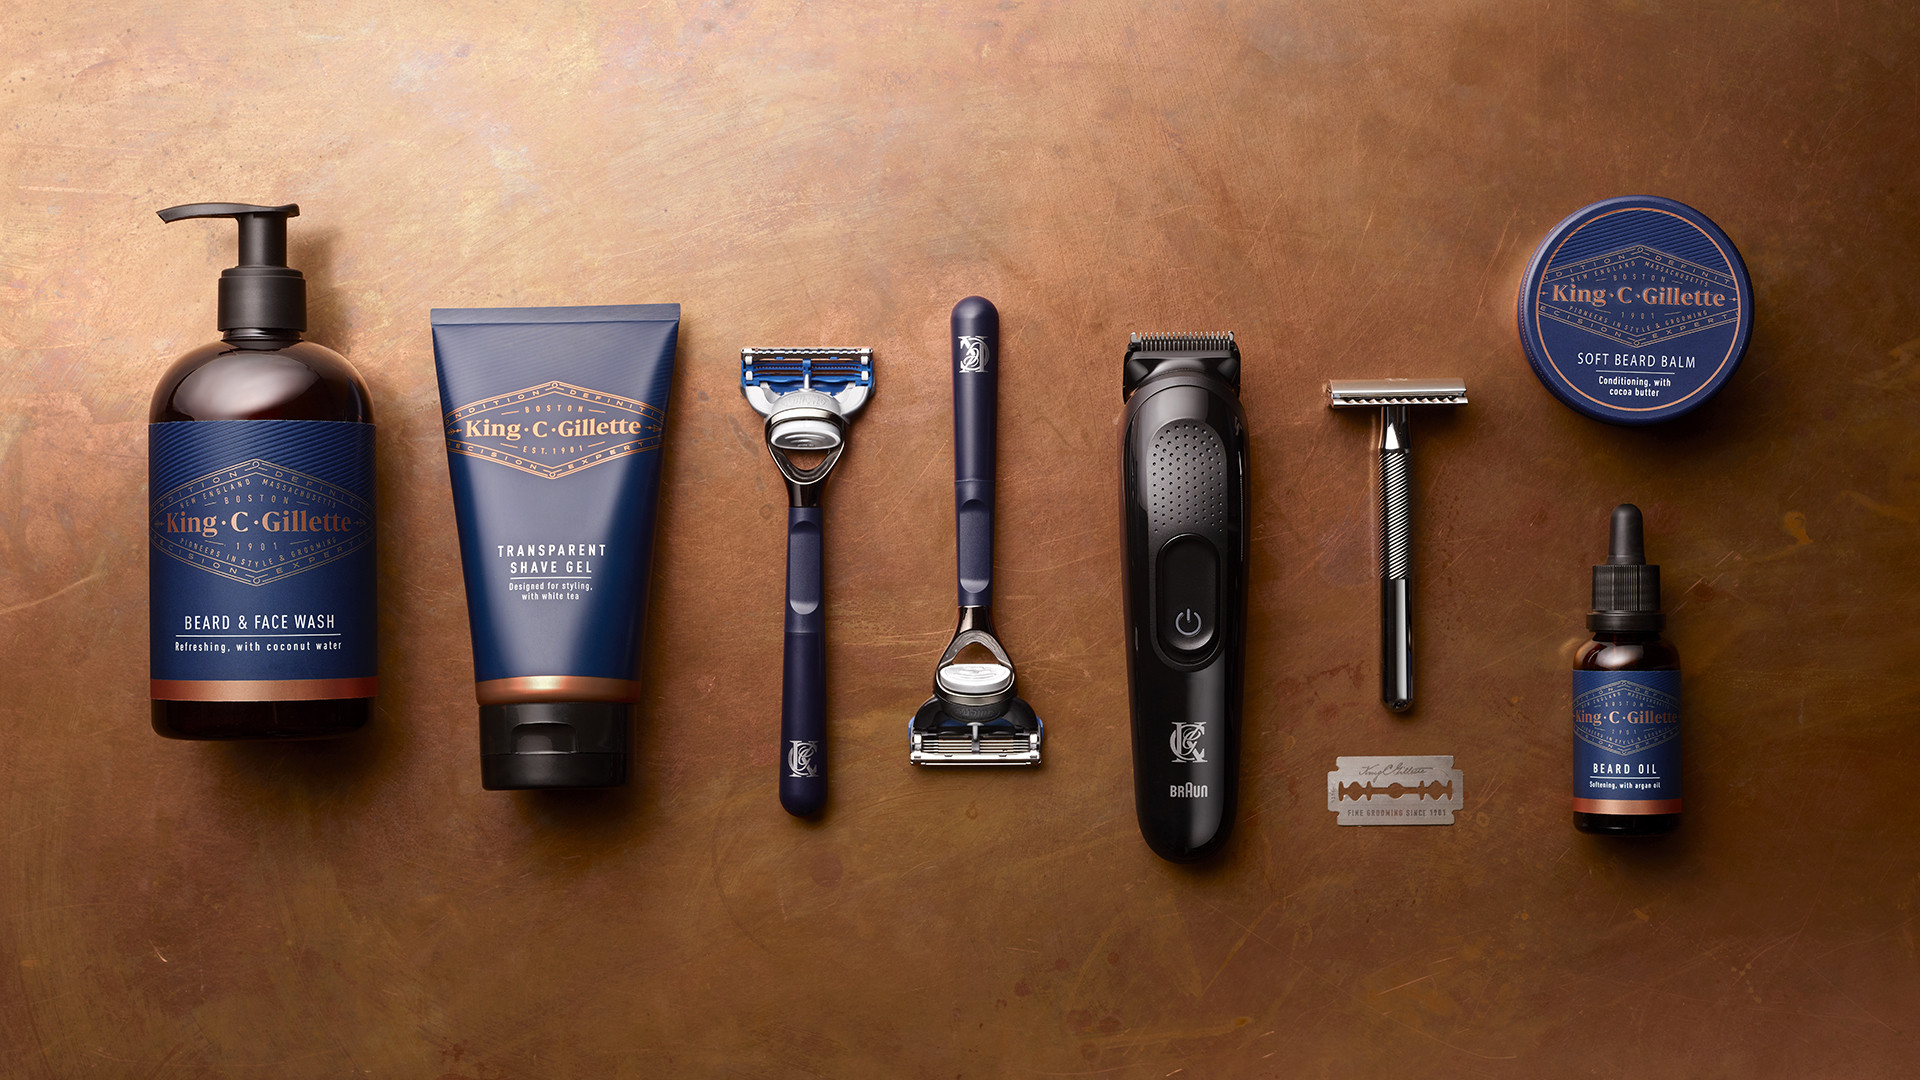 King C Gillette products